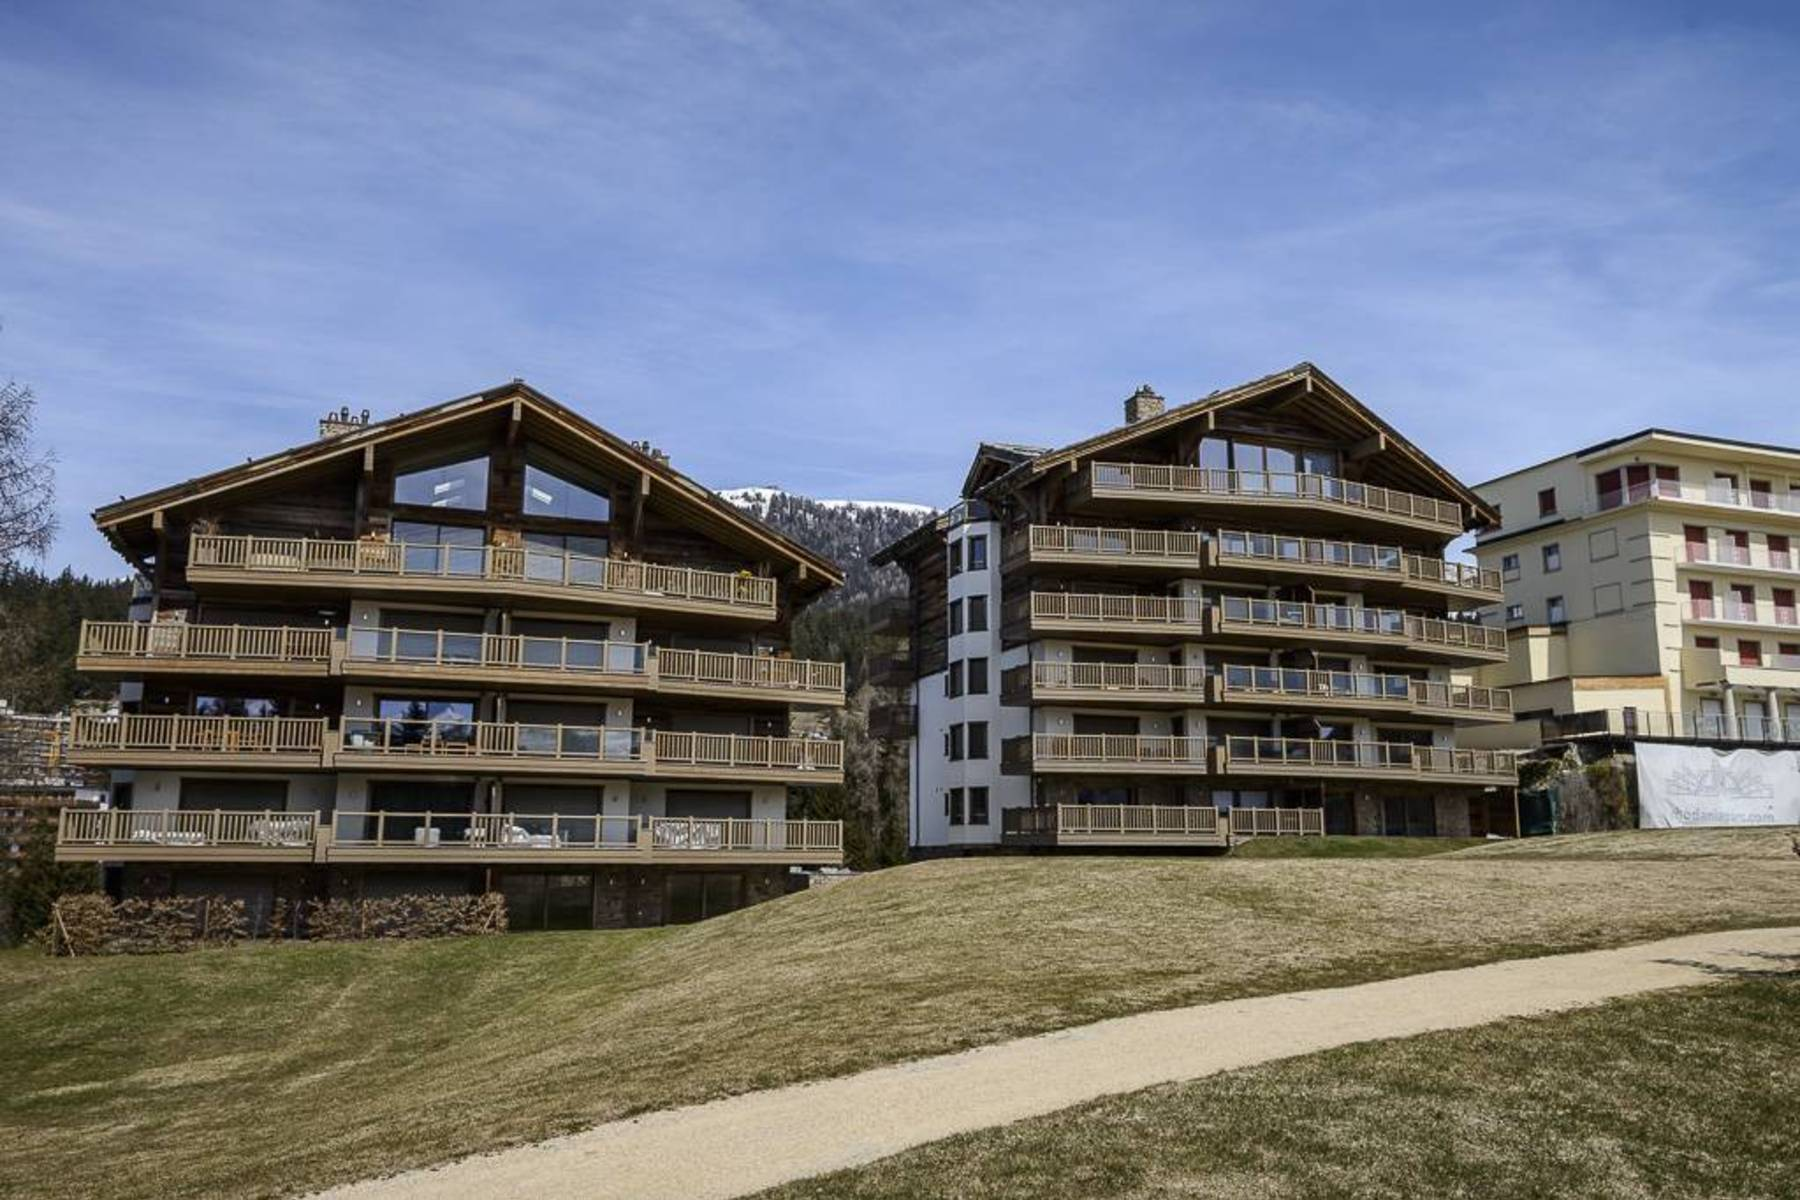 Property For Sale at For sale, Duplex/two-level, 3963 Crans-Montana, Réf 25716